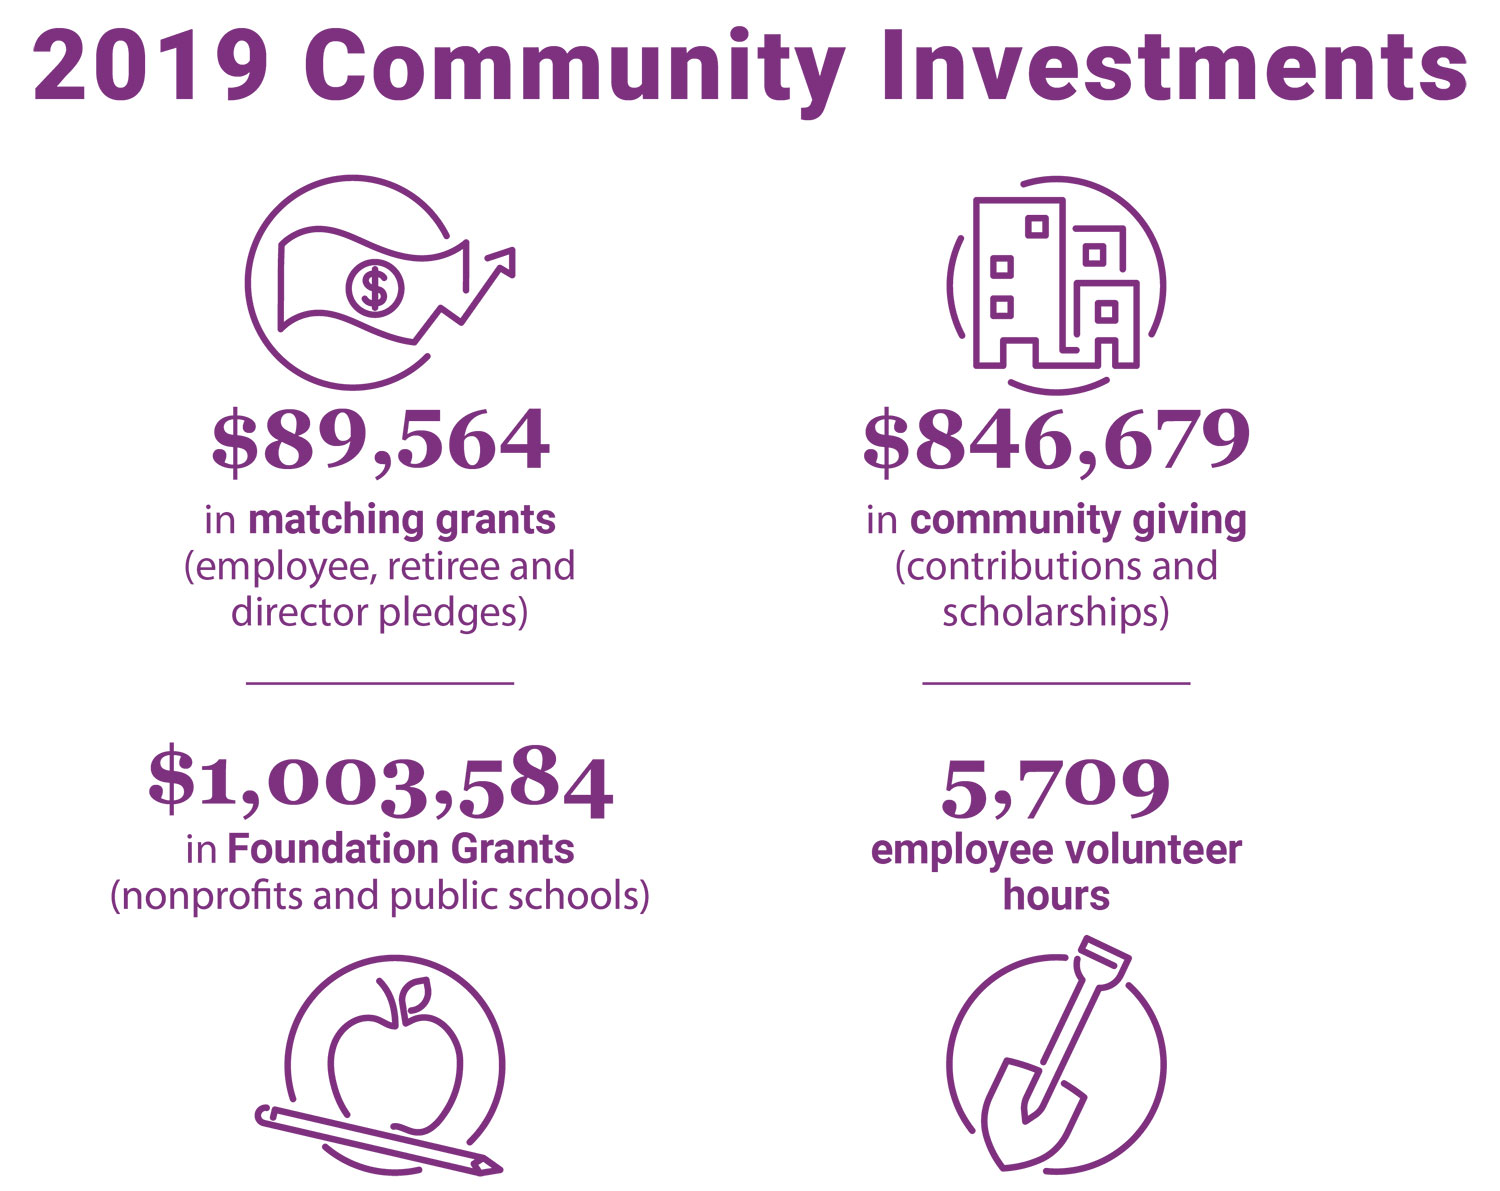 2019 Community Investments